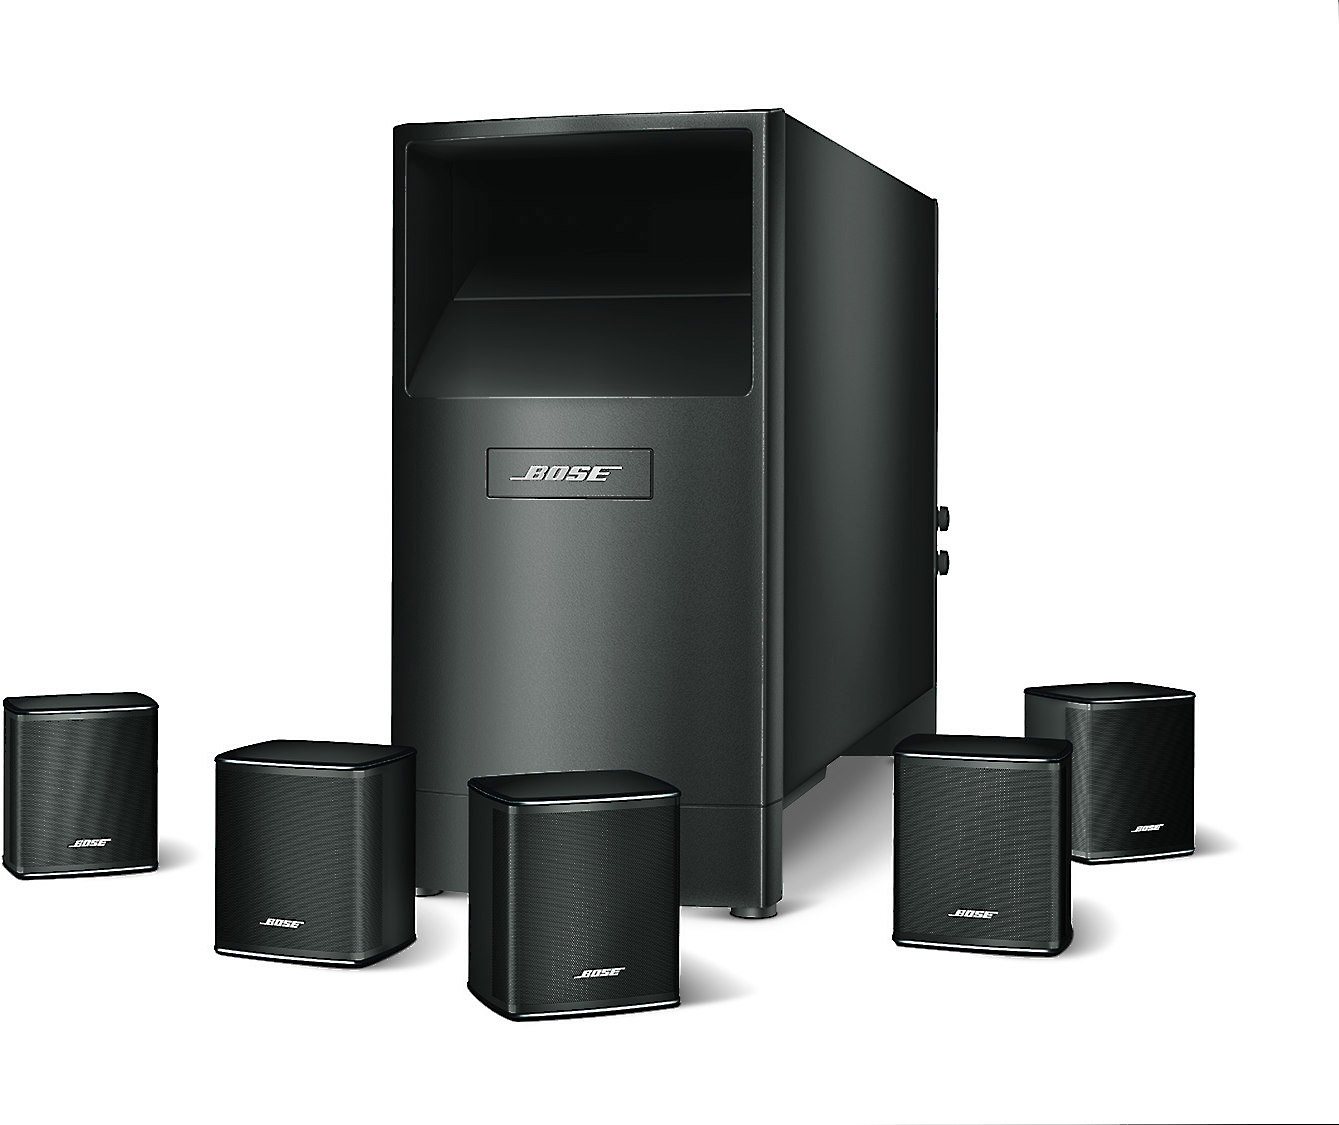 Bose Sound System >> Bose Acoustimass 6 Series V Home Theater Speaker System At Crutchfield